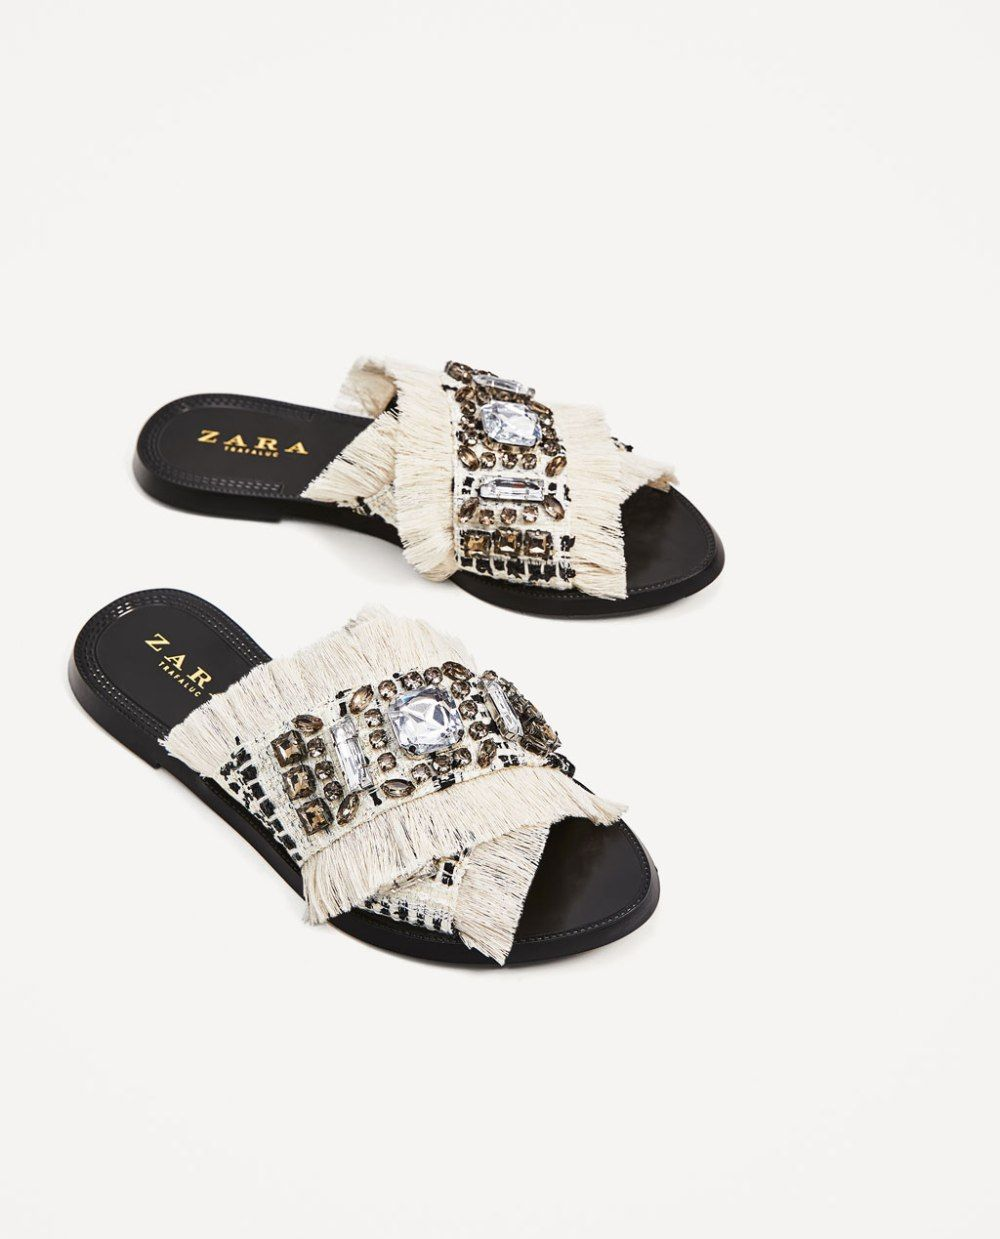 f2d37fec9 Zara, flat sandals with an extra touch for a day party or a casual evening  out.